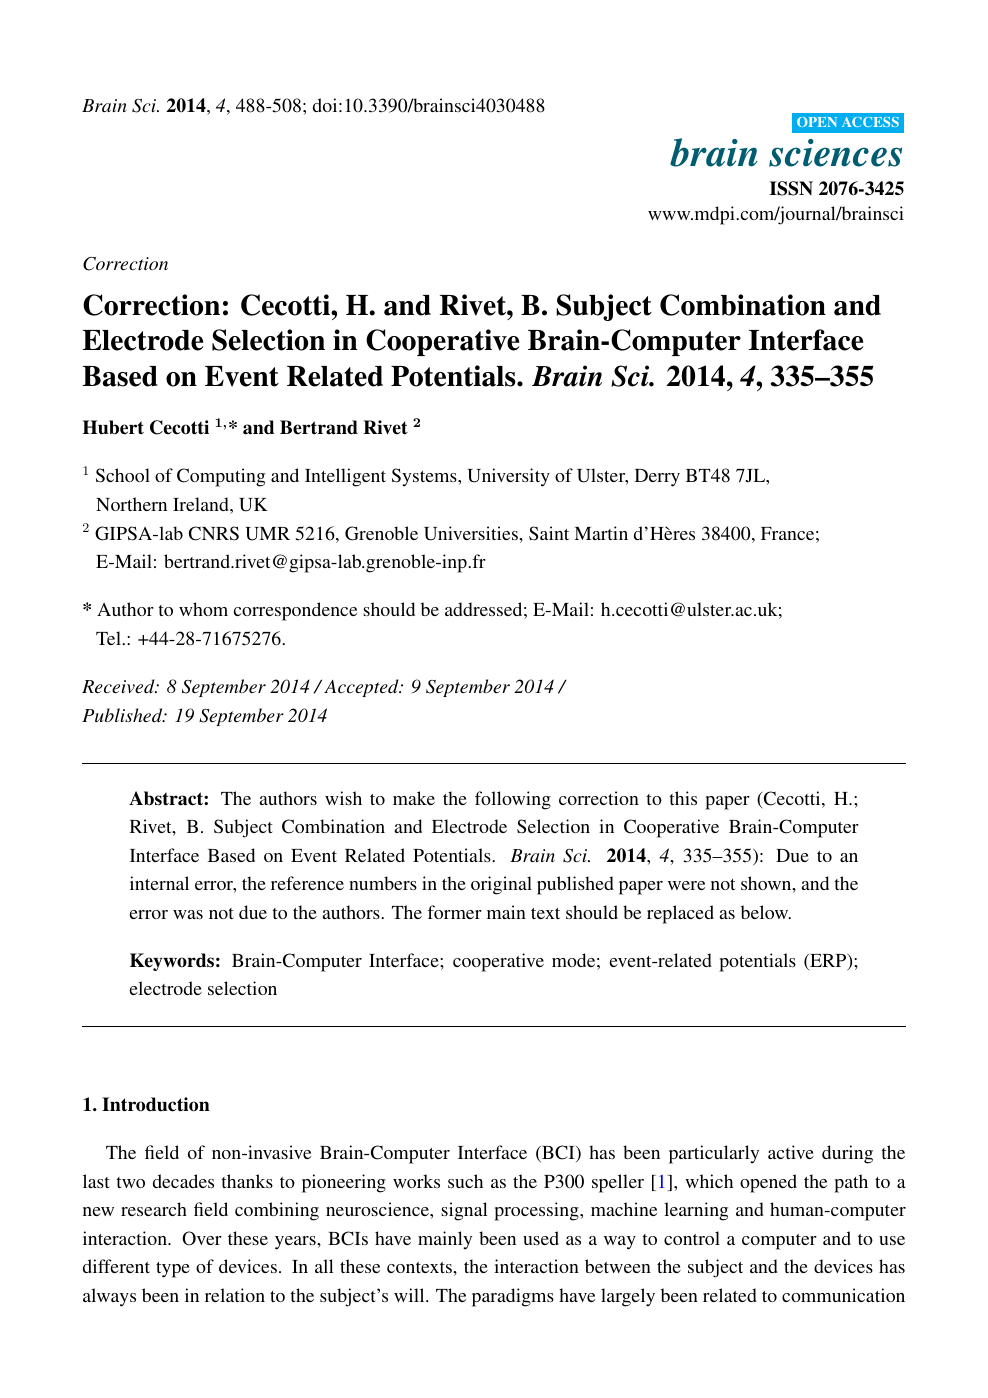 Correction: Cecotti, H  and Rivet, B  Subject Combination and